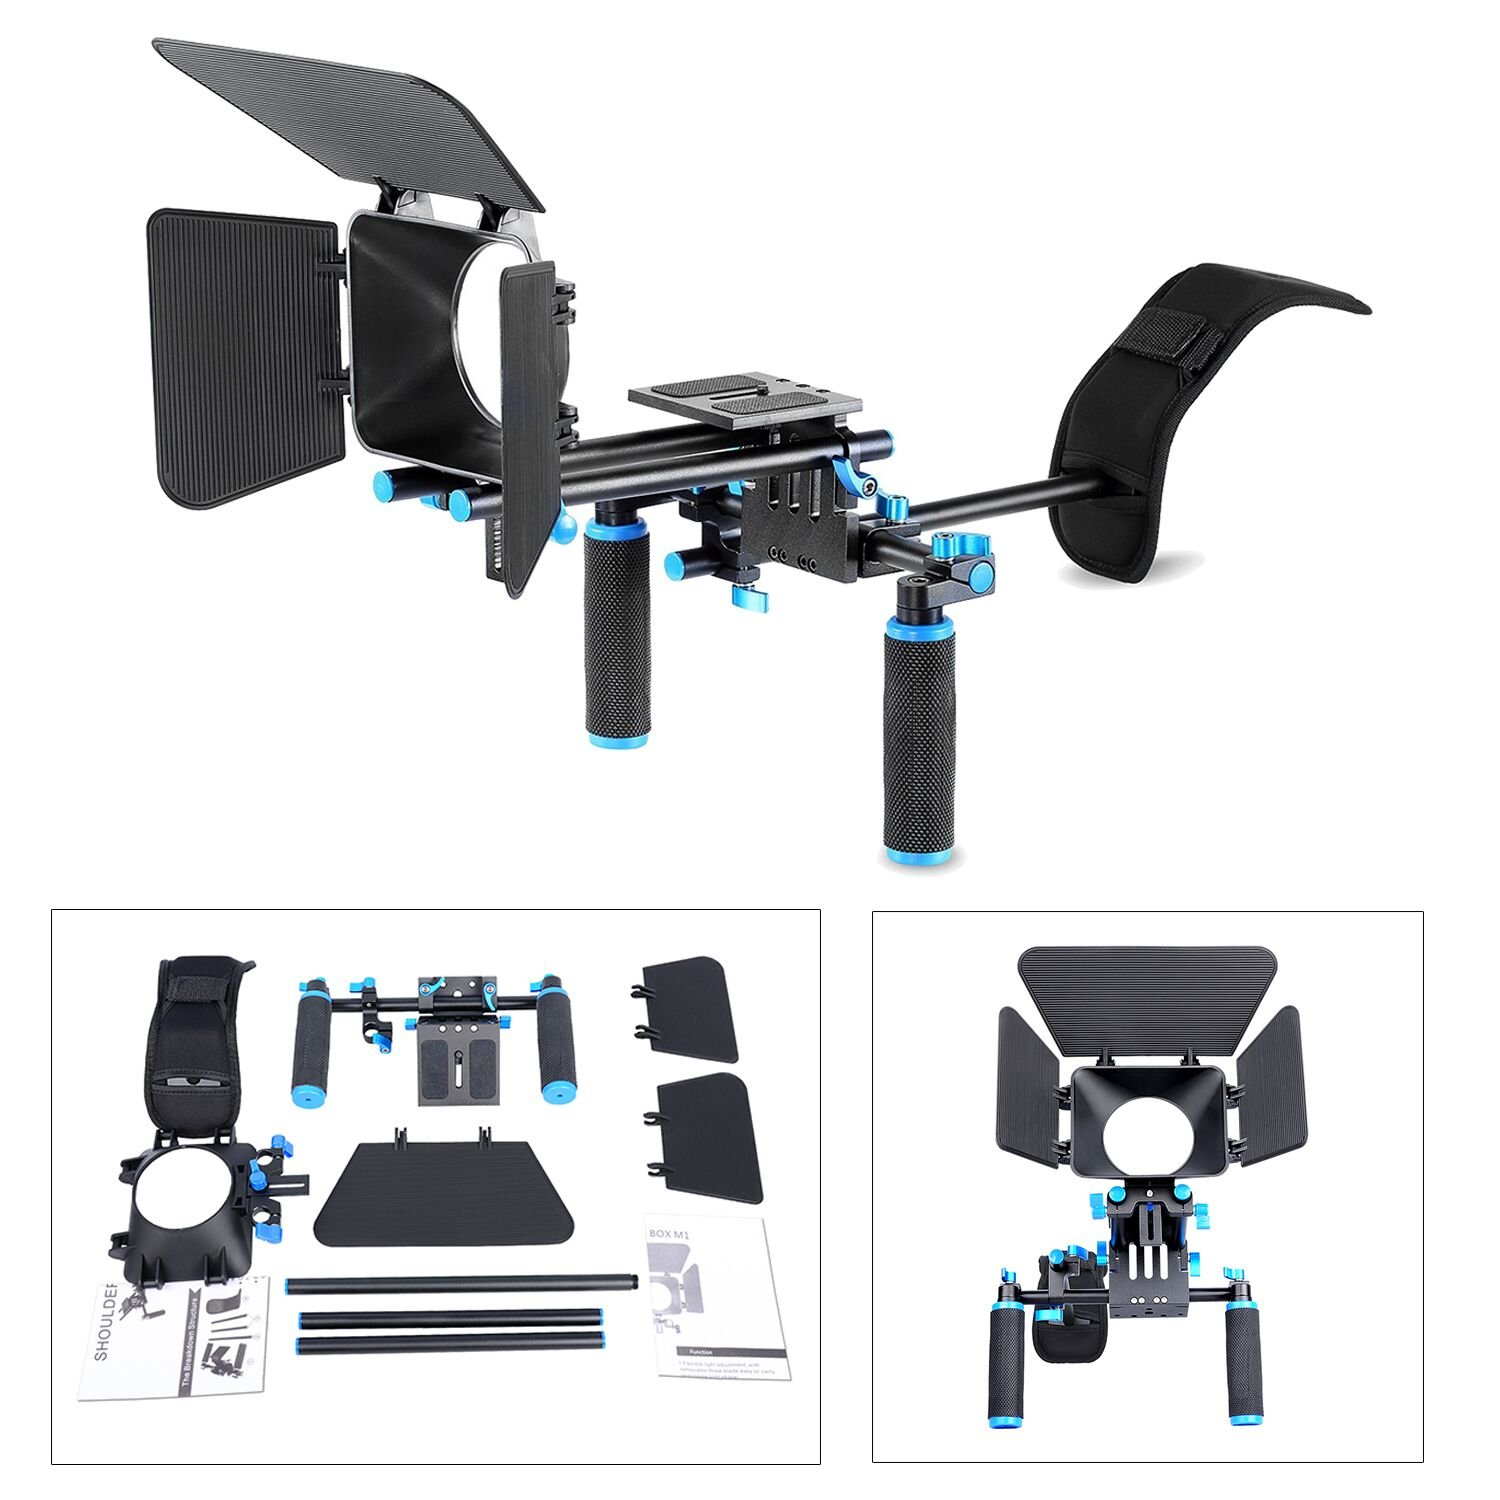 Movie Video Making Rig Set System Kit (1) Shoulder Mount+(1) 15mm Rail Rod System+(1) Matte Box Compatible for Camcorder DSLR Camera Such as Canon Nikon Sony Pentax Fujifilm Panasonic by YaeCCC